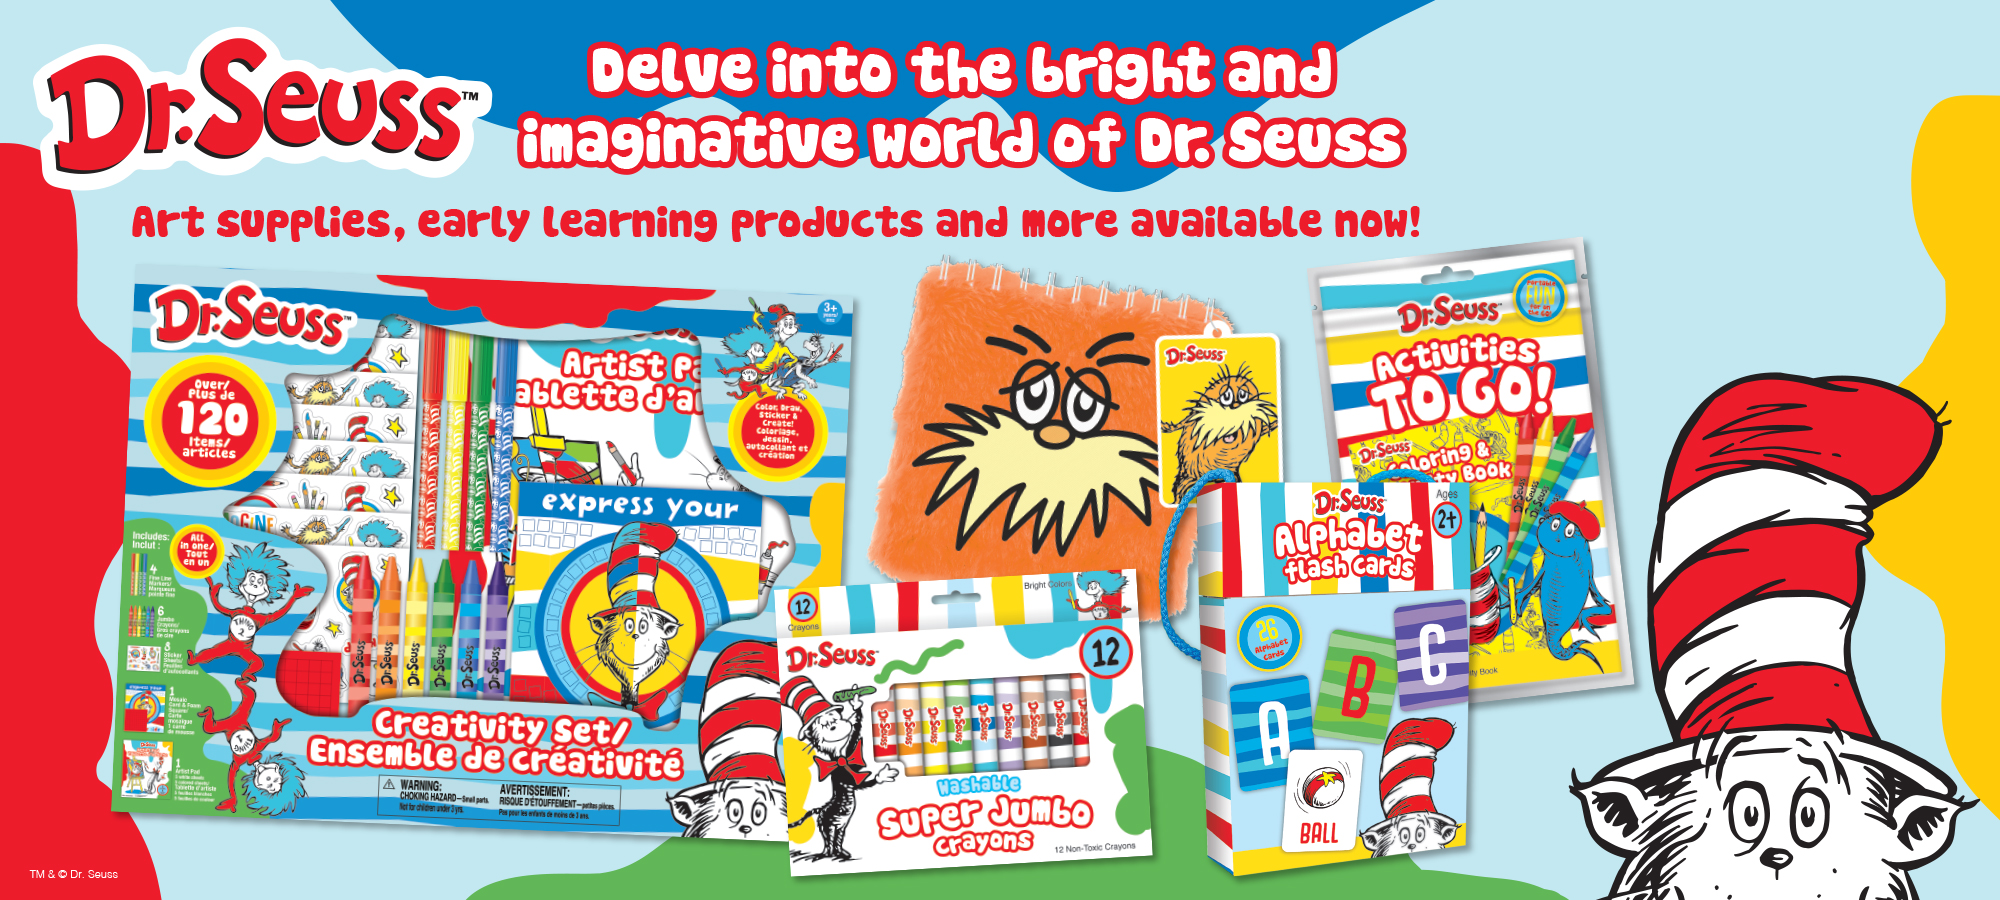 Dr. Seuss Product Announcement Banner